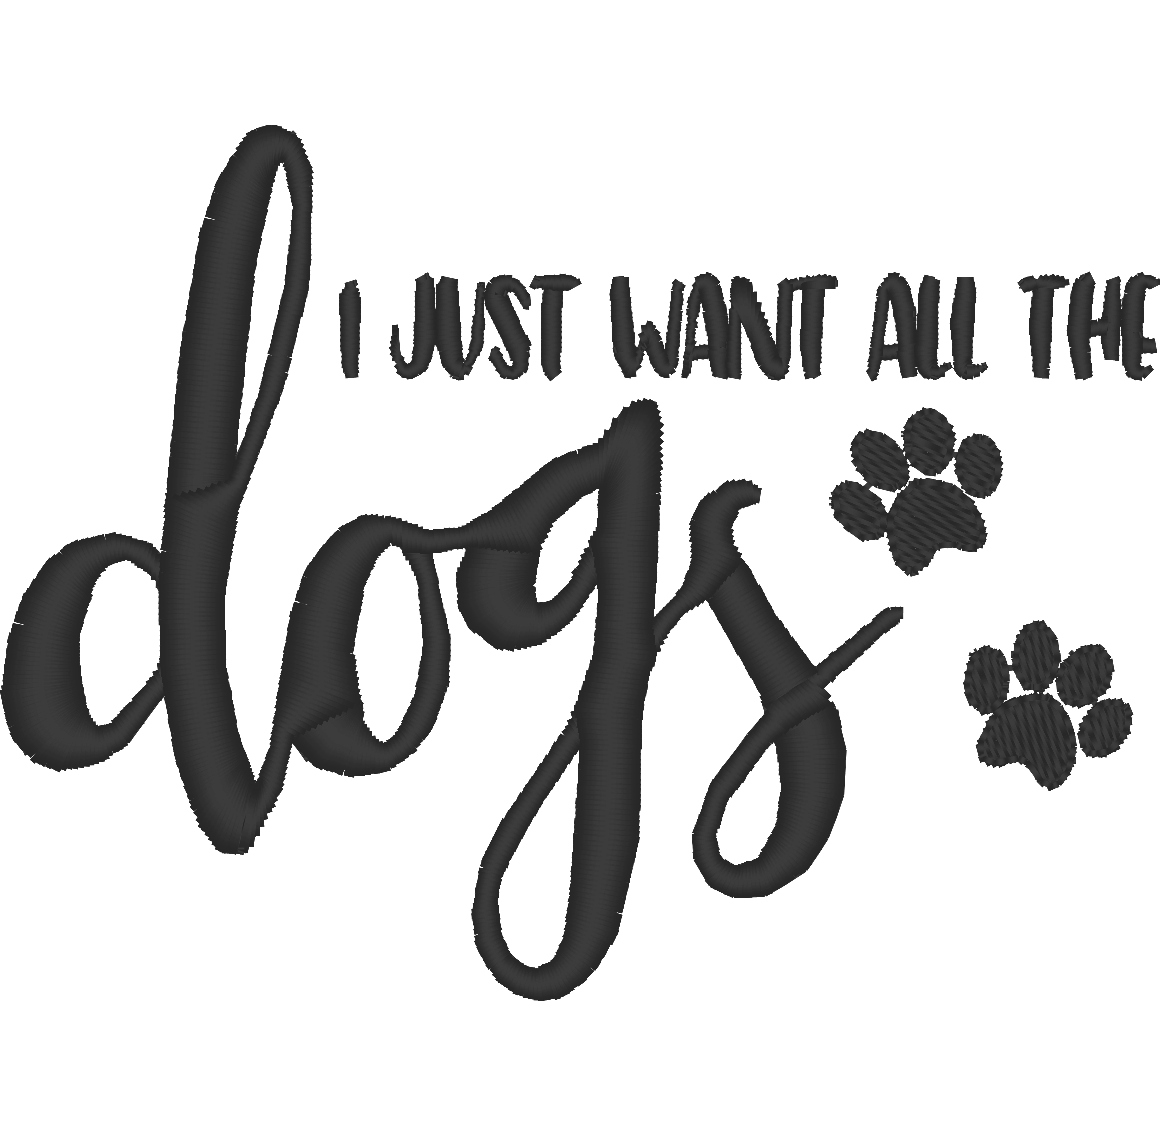 I_JUST-WANT_ALL_THE_DOGS